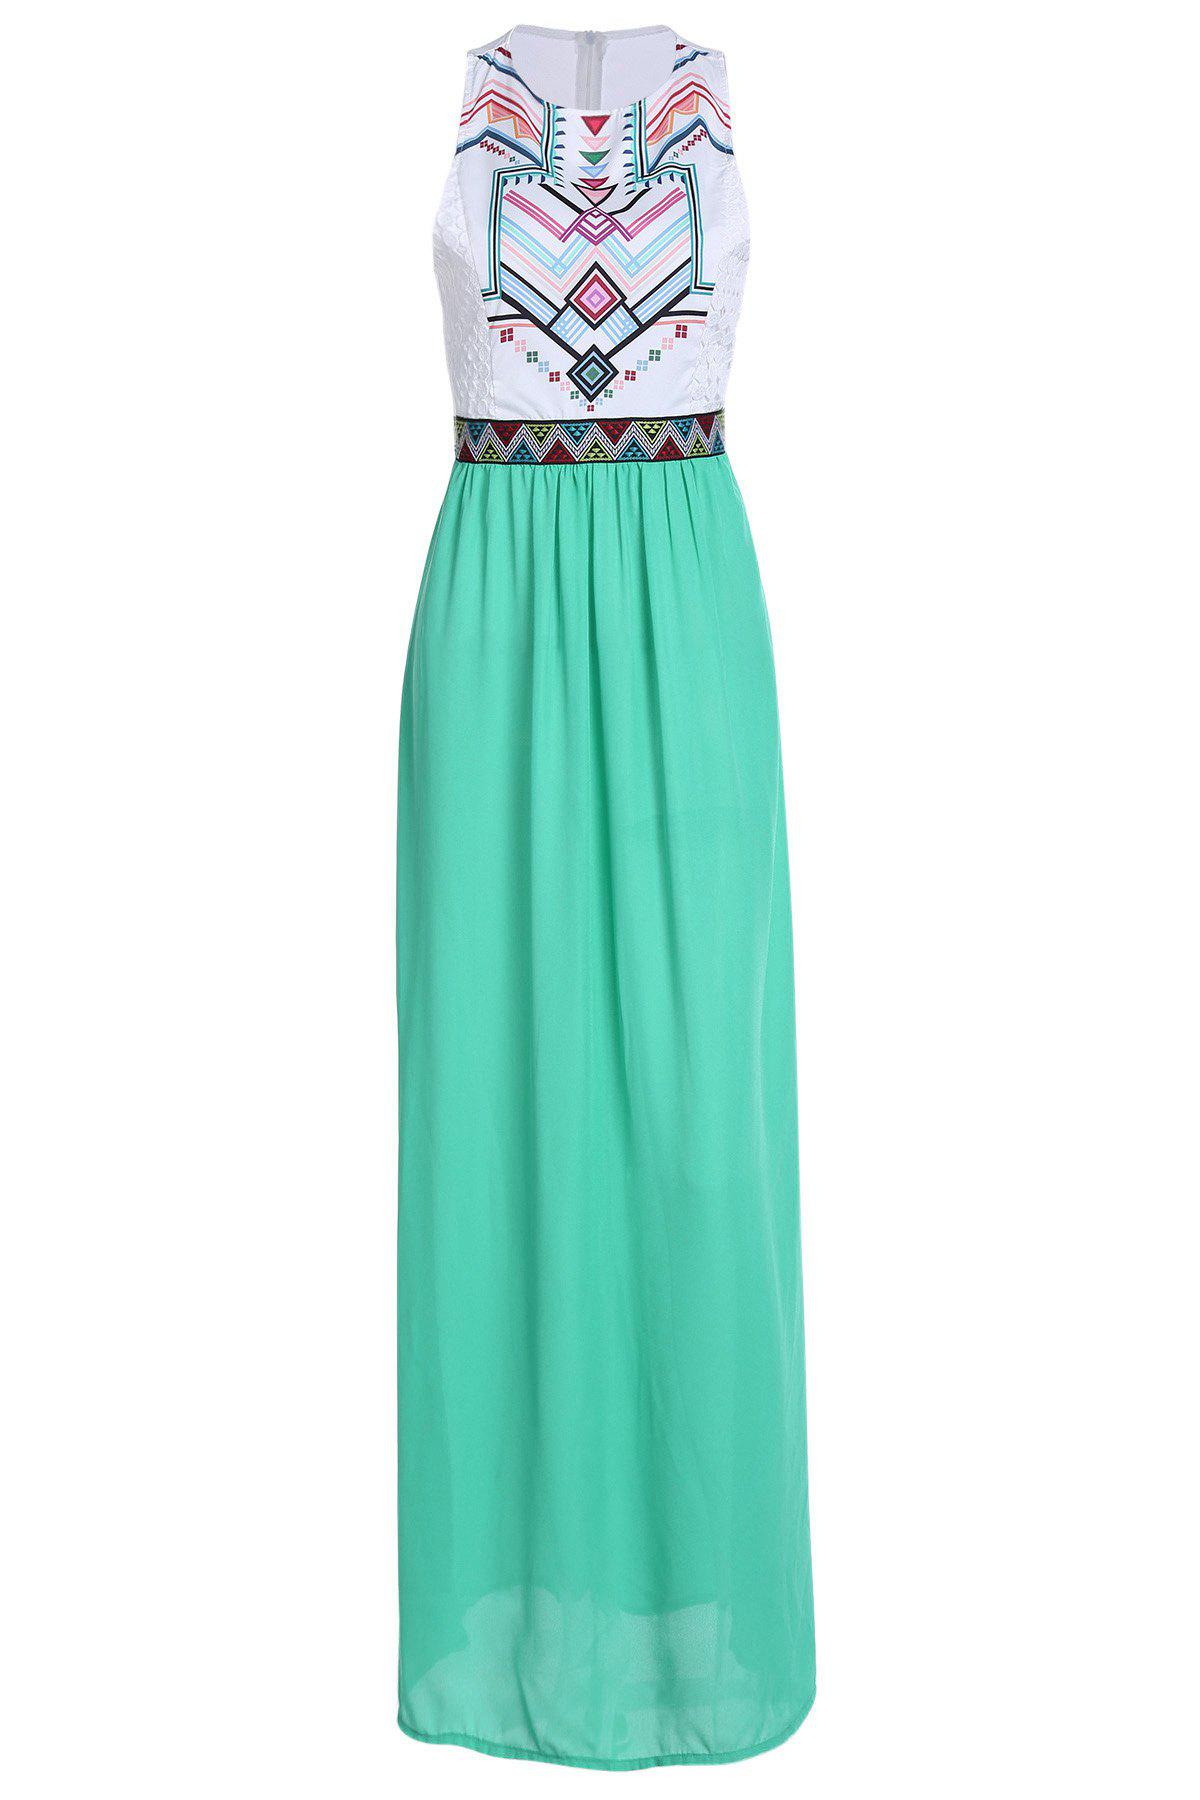 Fashionable Jewel Neck Geometric Print Splicing Sleeveless Maxi Dress For Women - S WHITE